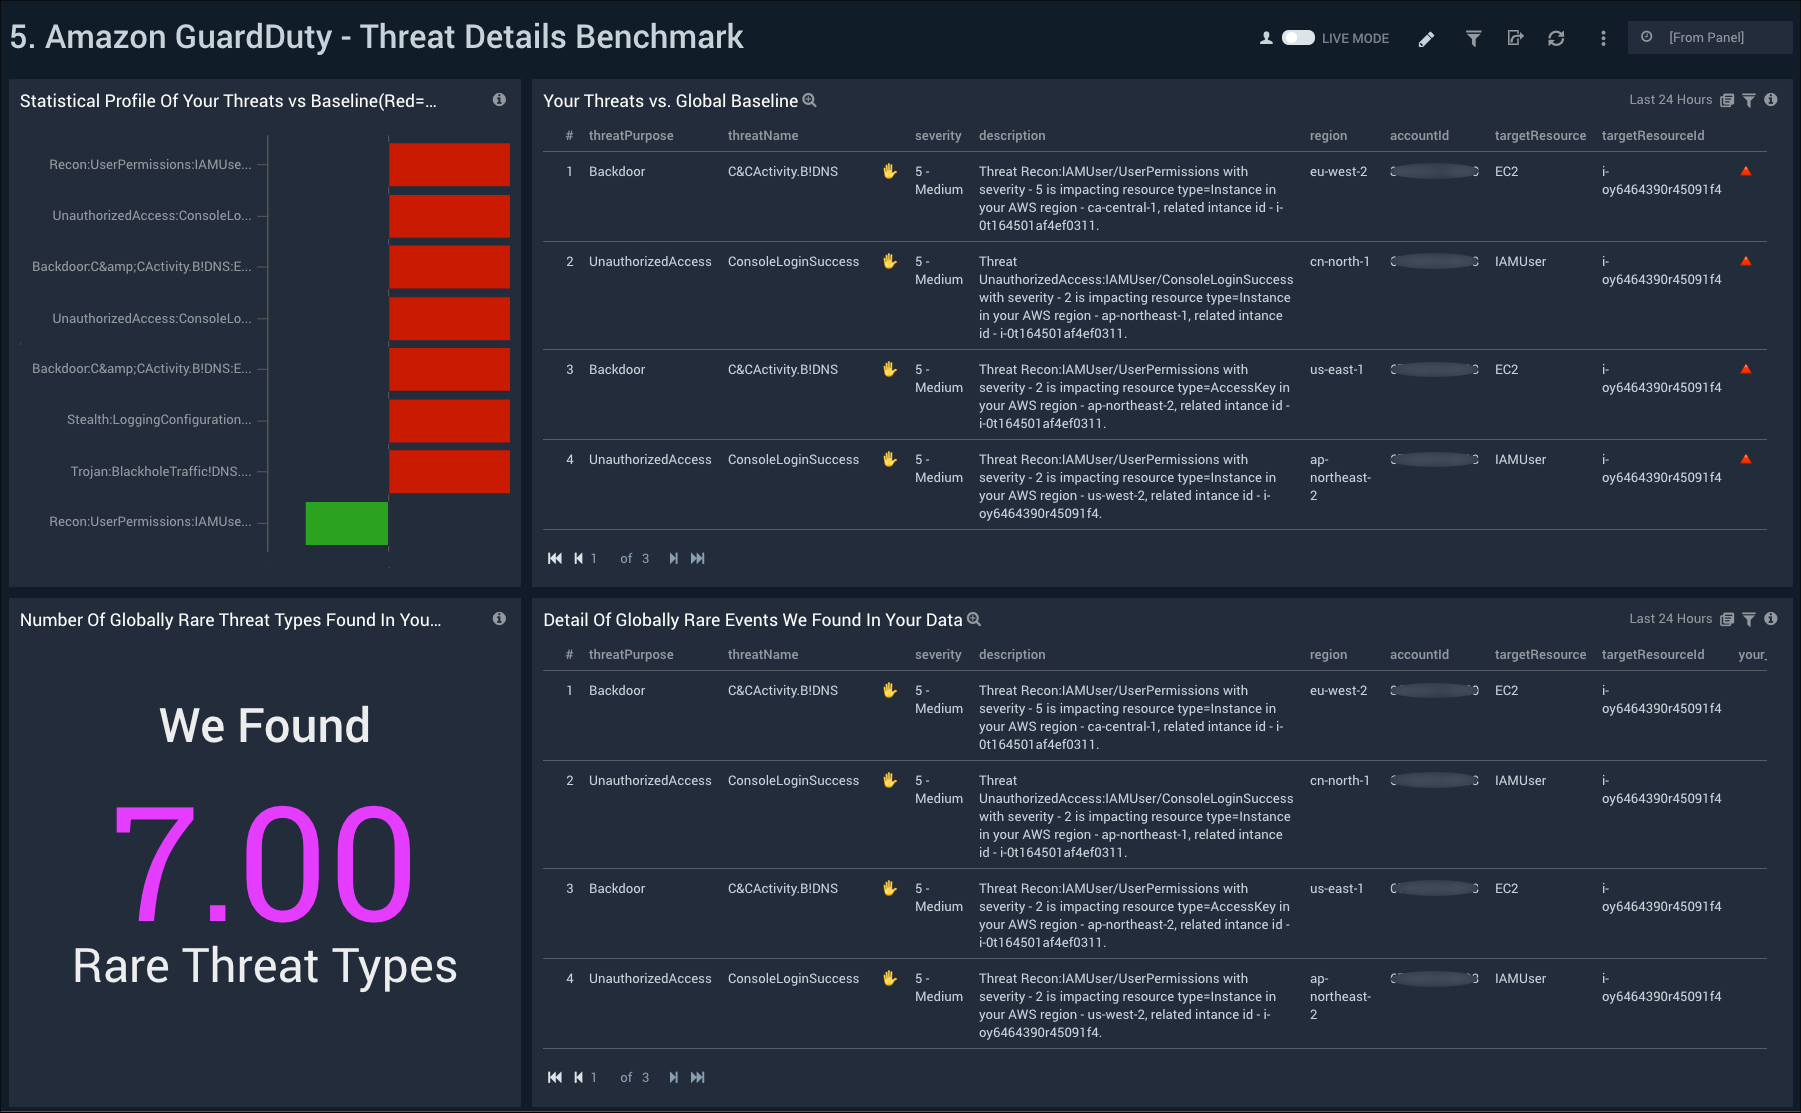 Amazon GuardDuty - Threat Details Benchmark